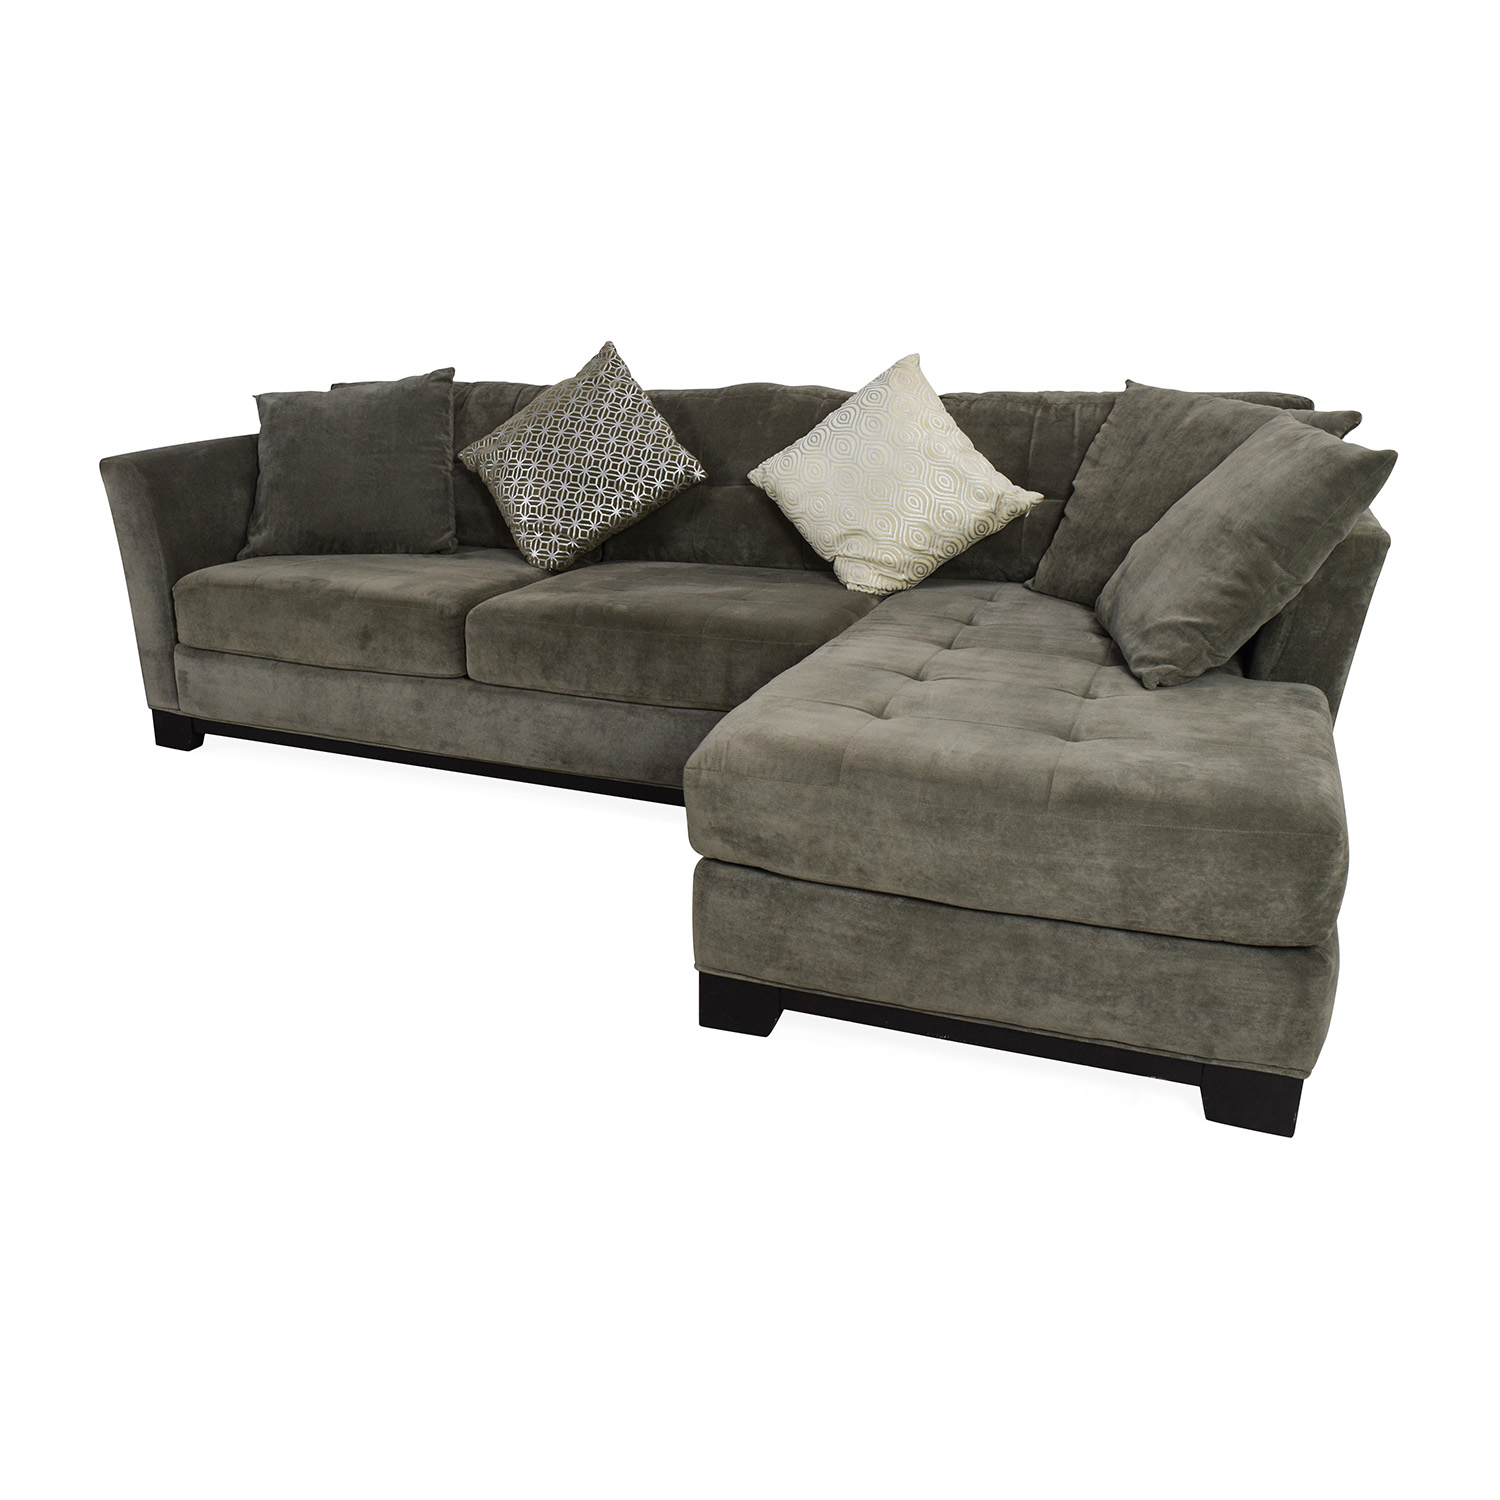 Macy's Macy's Gray Sectional Couch With Chaise